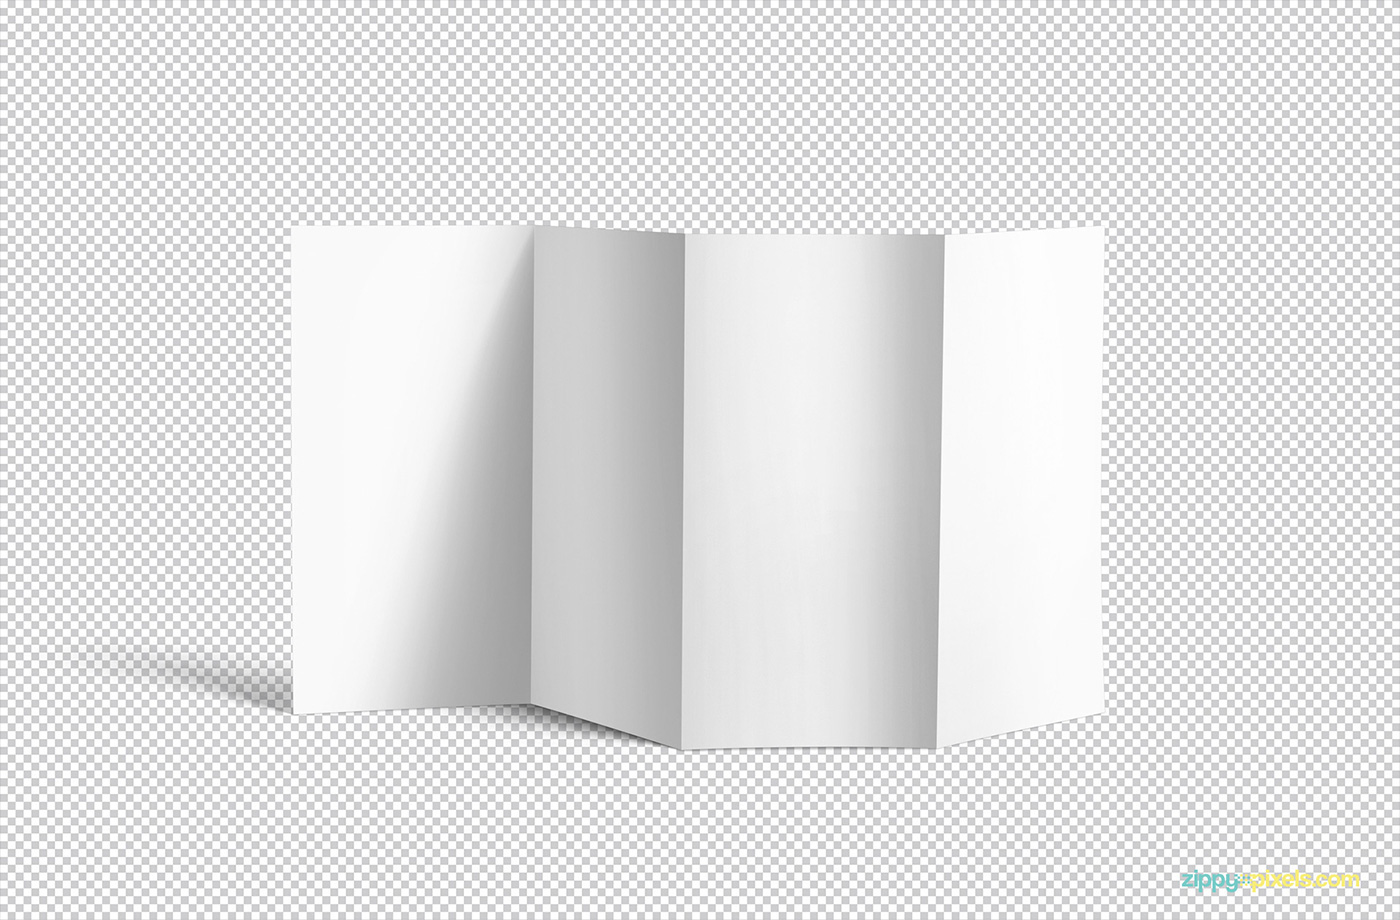 Please Click Here To Download This Free Brilliant 4 Fold Brochure Mockup